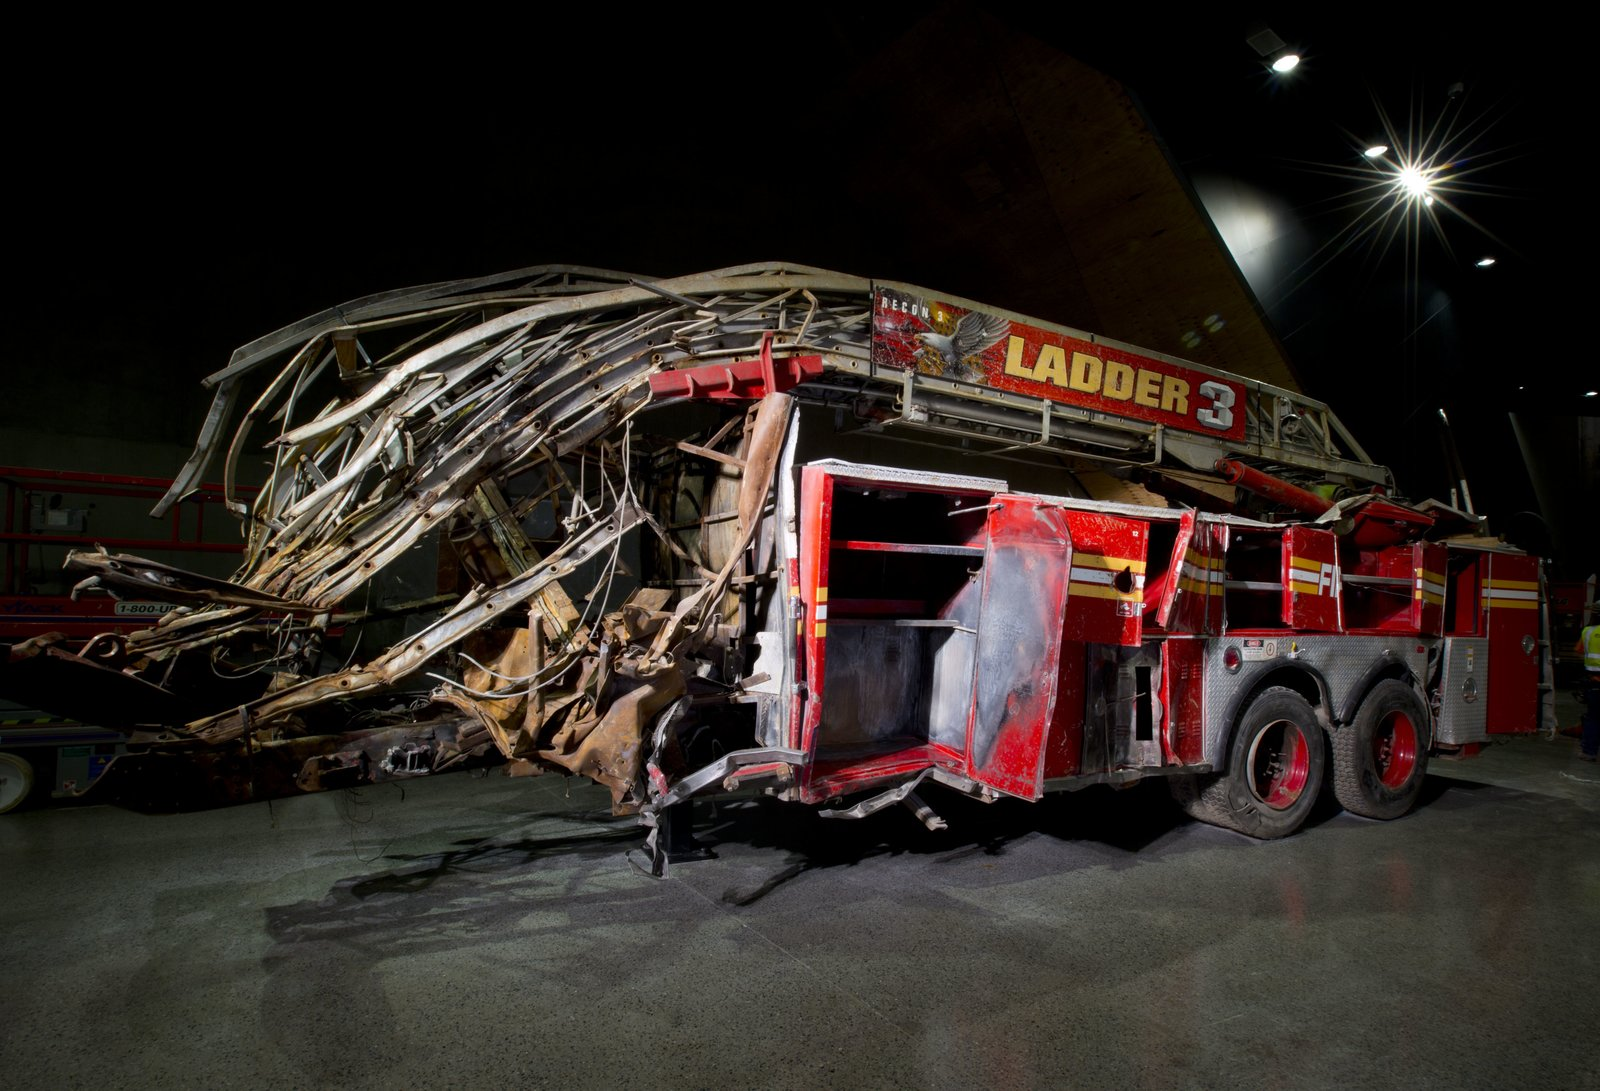 This Ladder Co. 3 truck carried 11 firefighters from a fire house in the East Village to the Trade Center on 9/11. All of them perished in the North Tower. Photo by Jin Lee.  Photo 13 of 14 in At Ground Zero Bedrock, the 9/11 Museum Prepares for Visitors